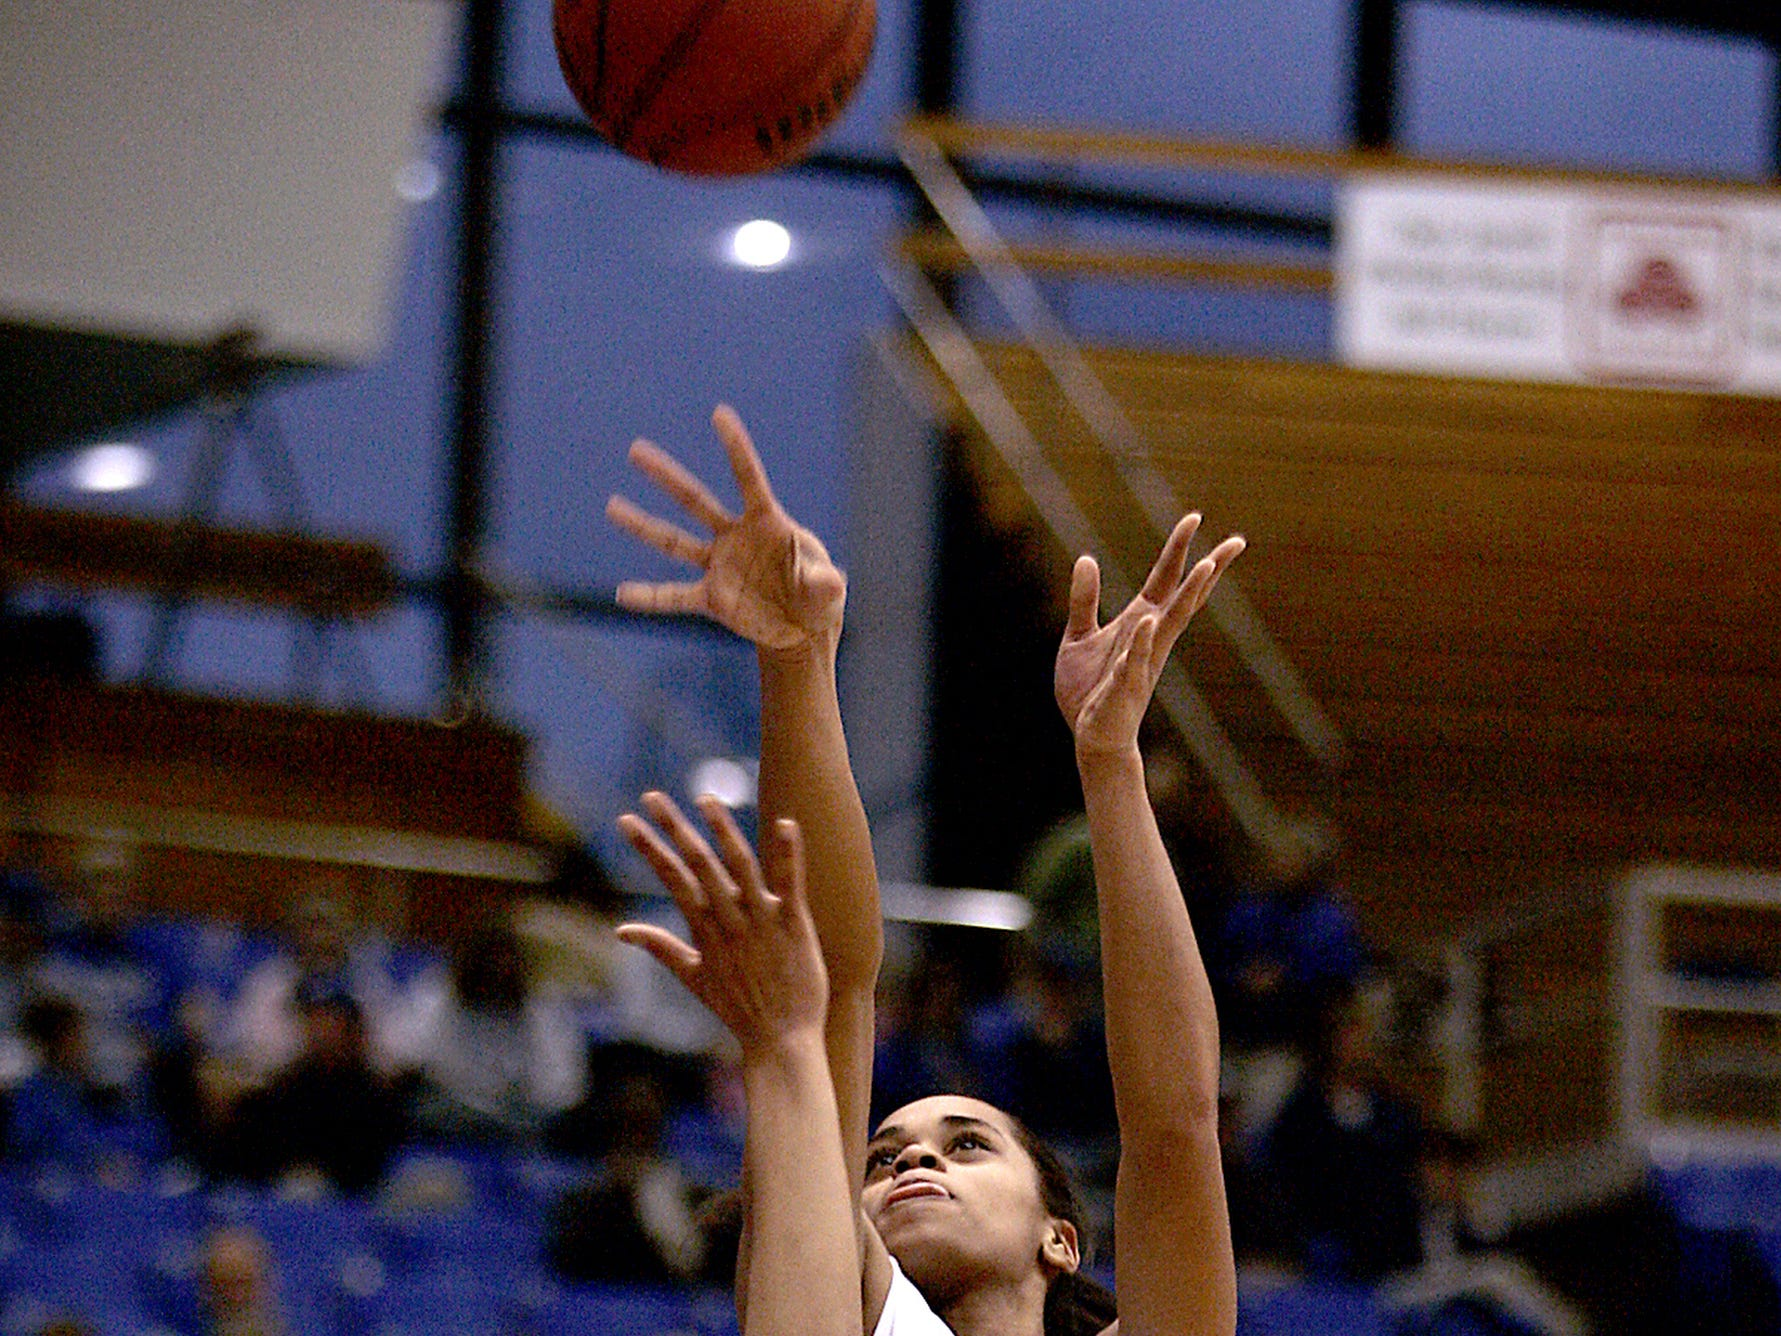 MTSU foward Tia Stovall lets a shot off during the game against Denver University at the Murphy Center Saturday.